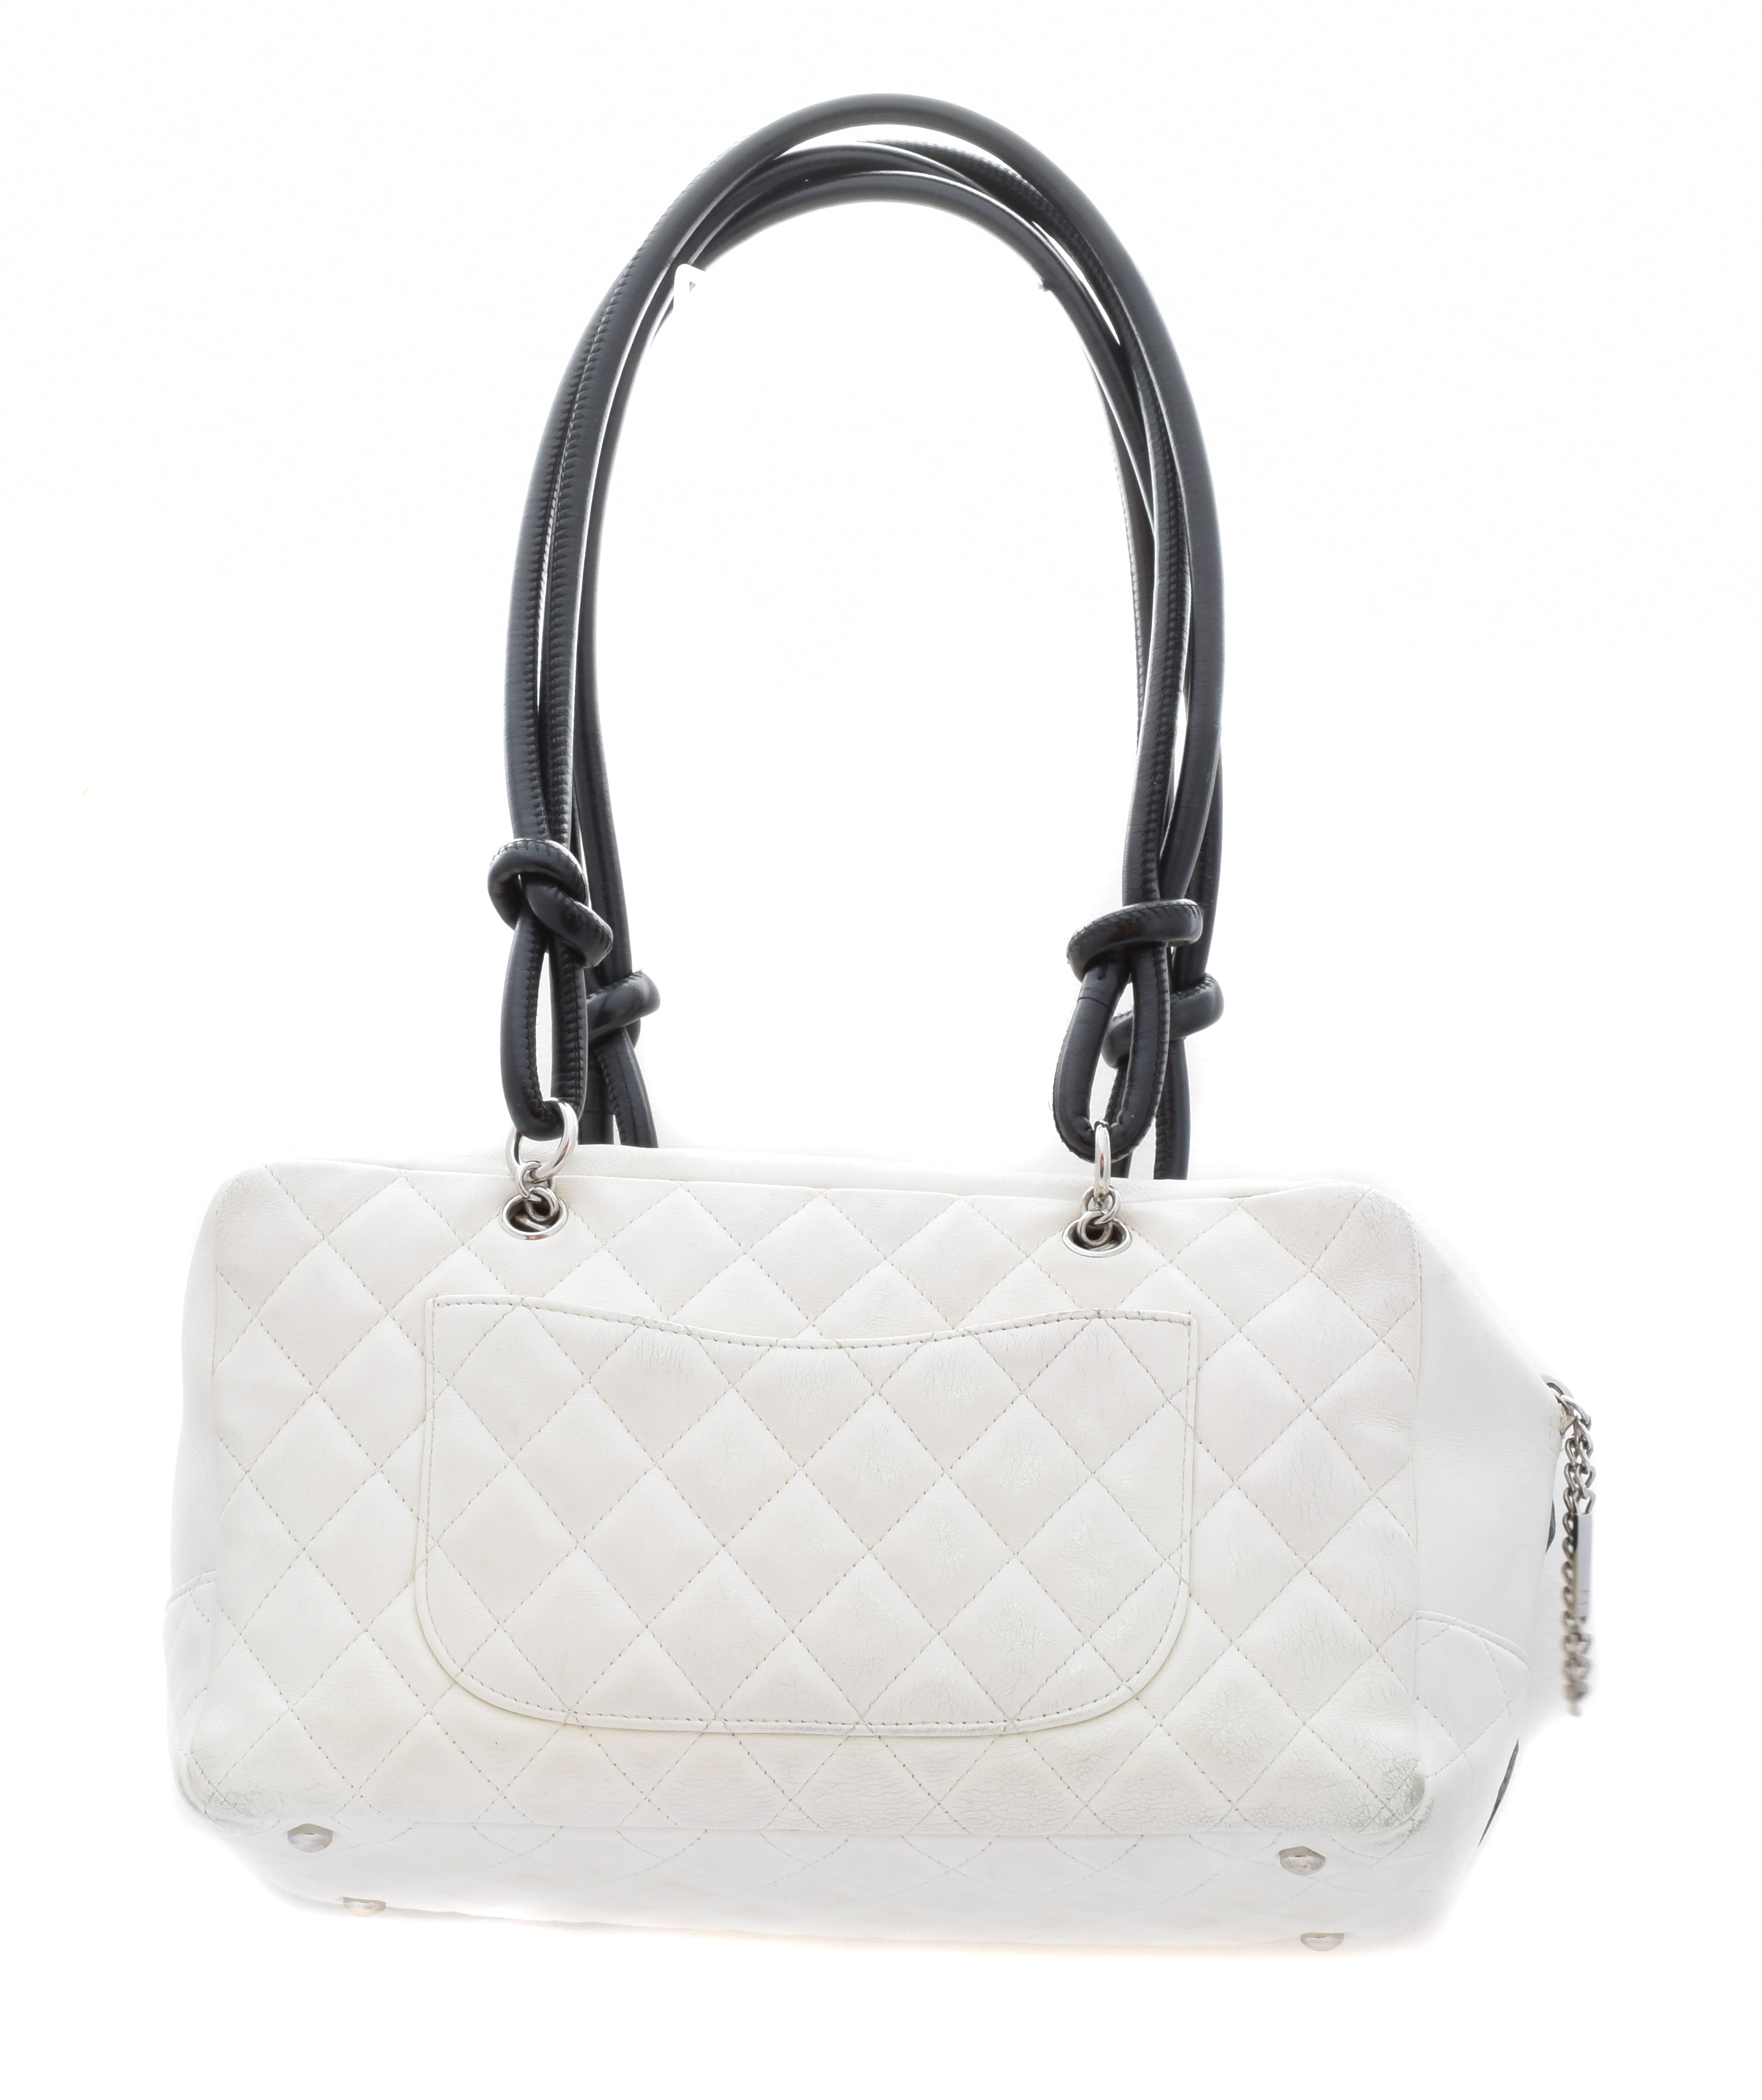 A Chanel Cambon Bowling Tote Shoulder Bag, - Image 2 of 2